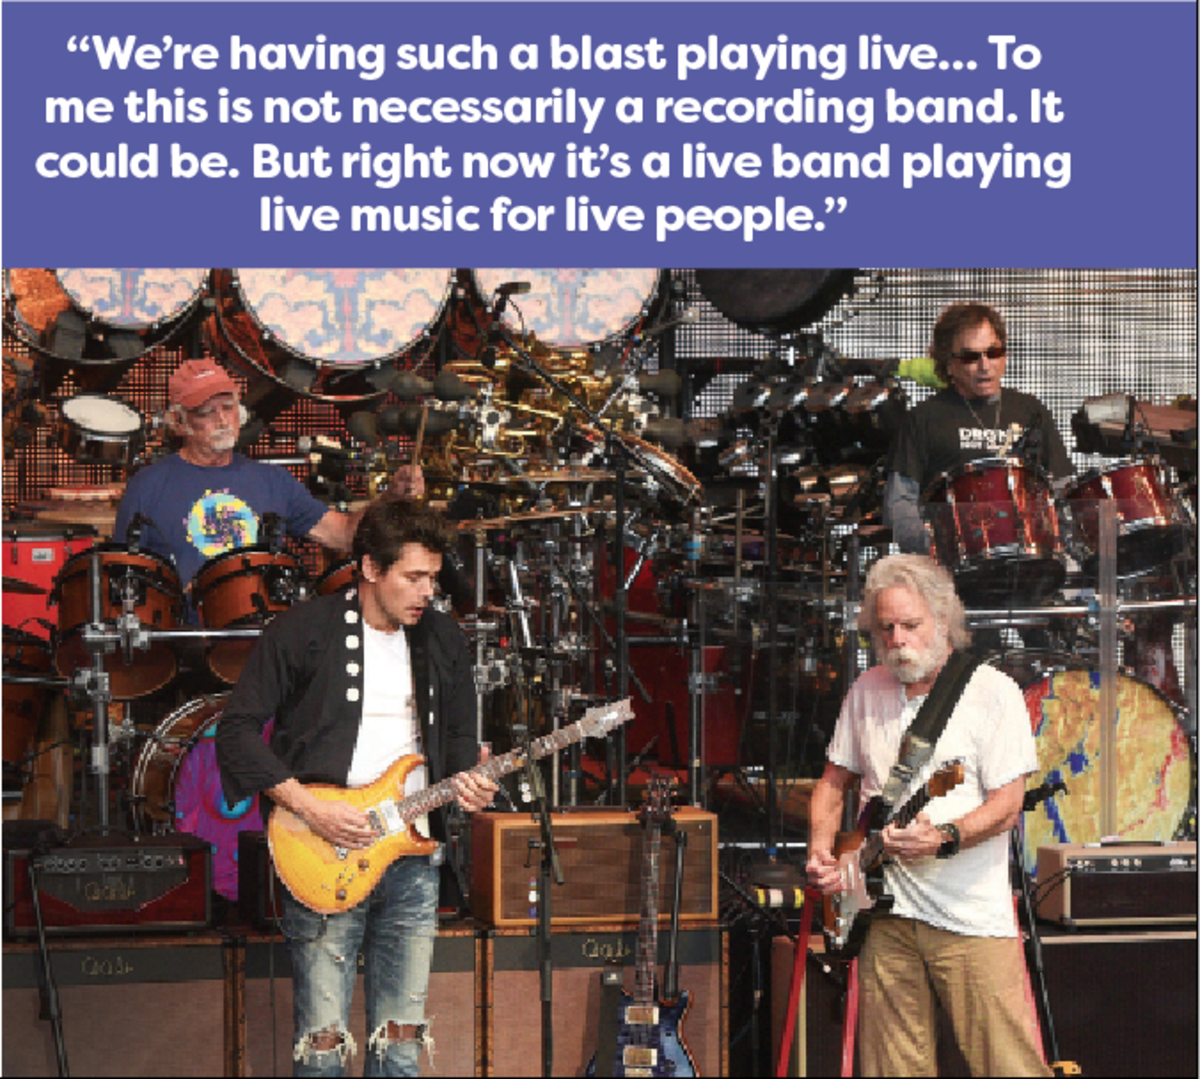 Bill Kreutzmann, John Mayer, Bob Weir and Mickey Hart of Dead & Company perform during their 2016 summer tour. Photo by C Flanigan/Getty Images.